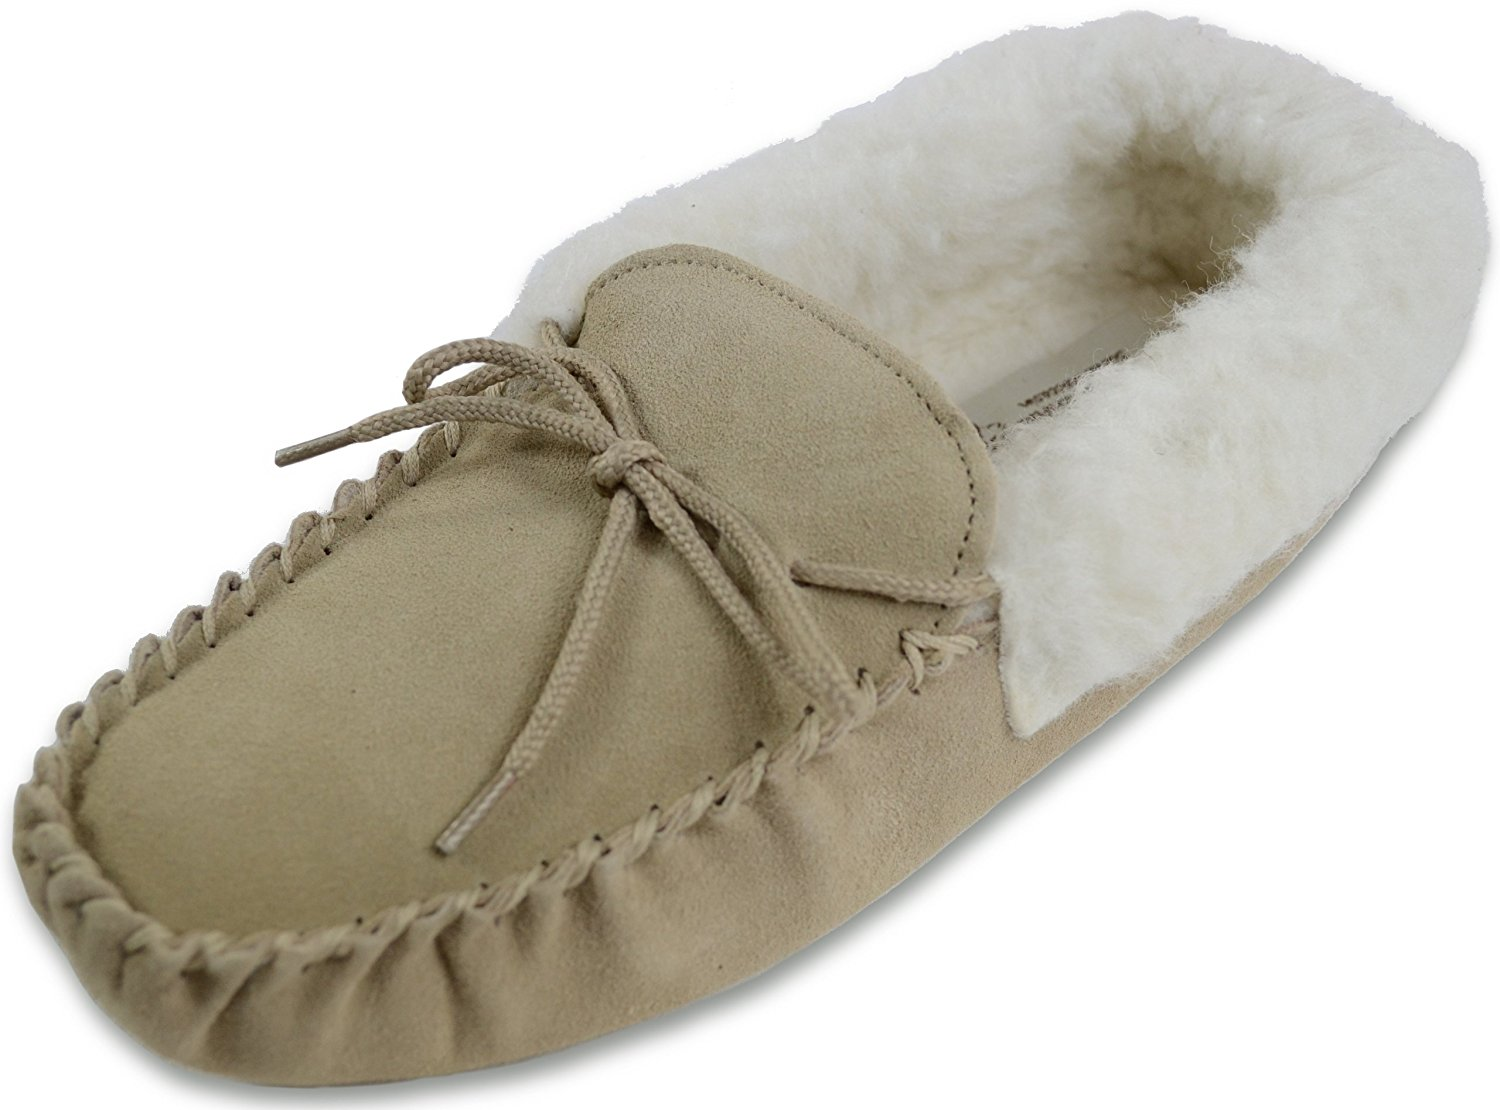 LADIES GENUINE SHEEPSKIN MOCCASIN SLIPPER HARD SOLE WOOL CUFF PINK